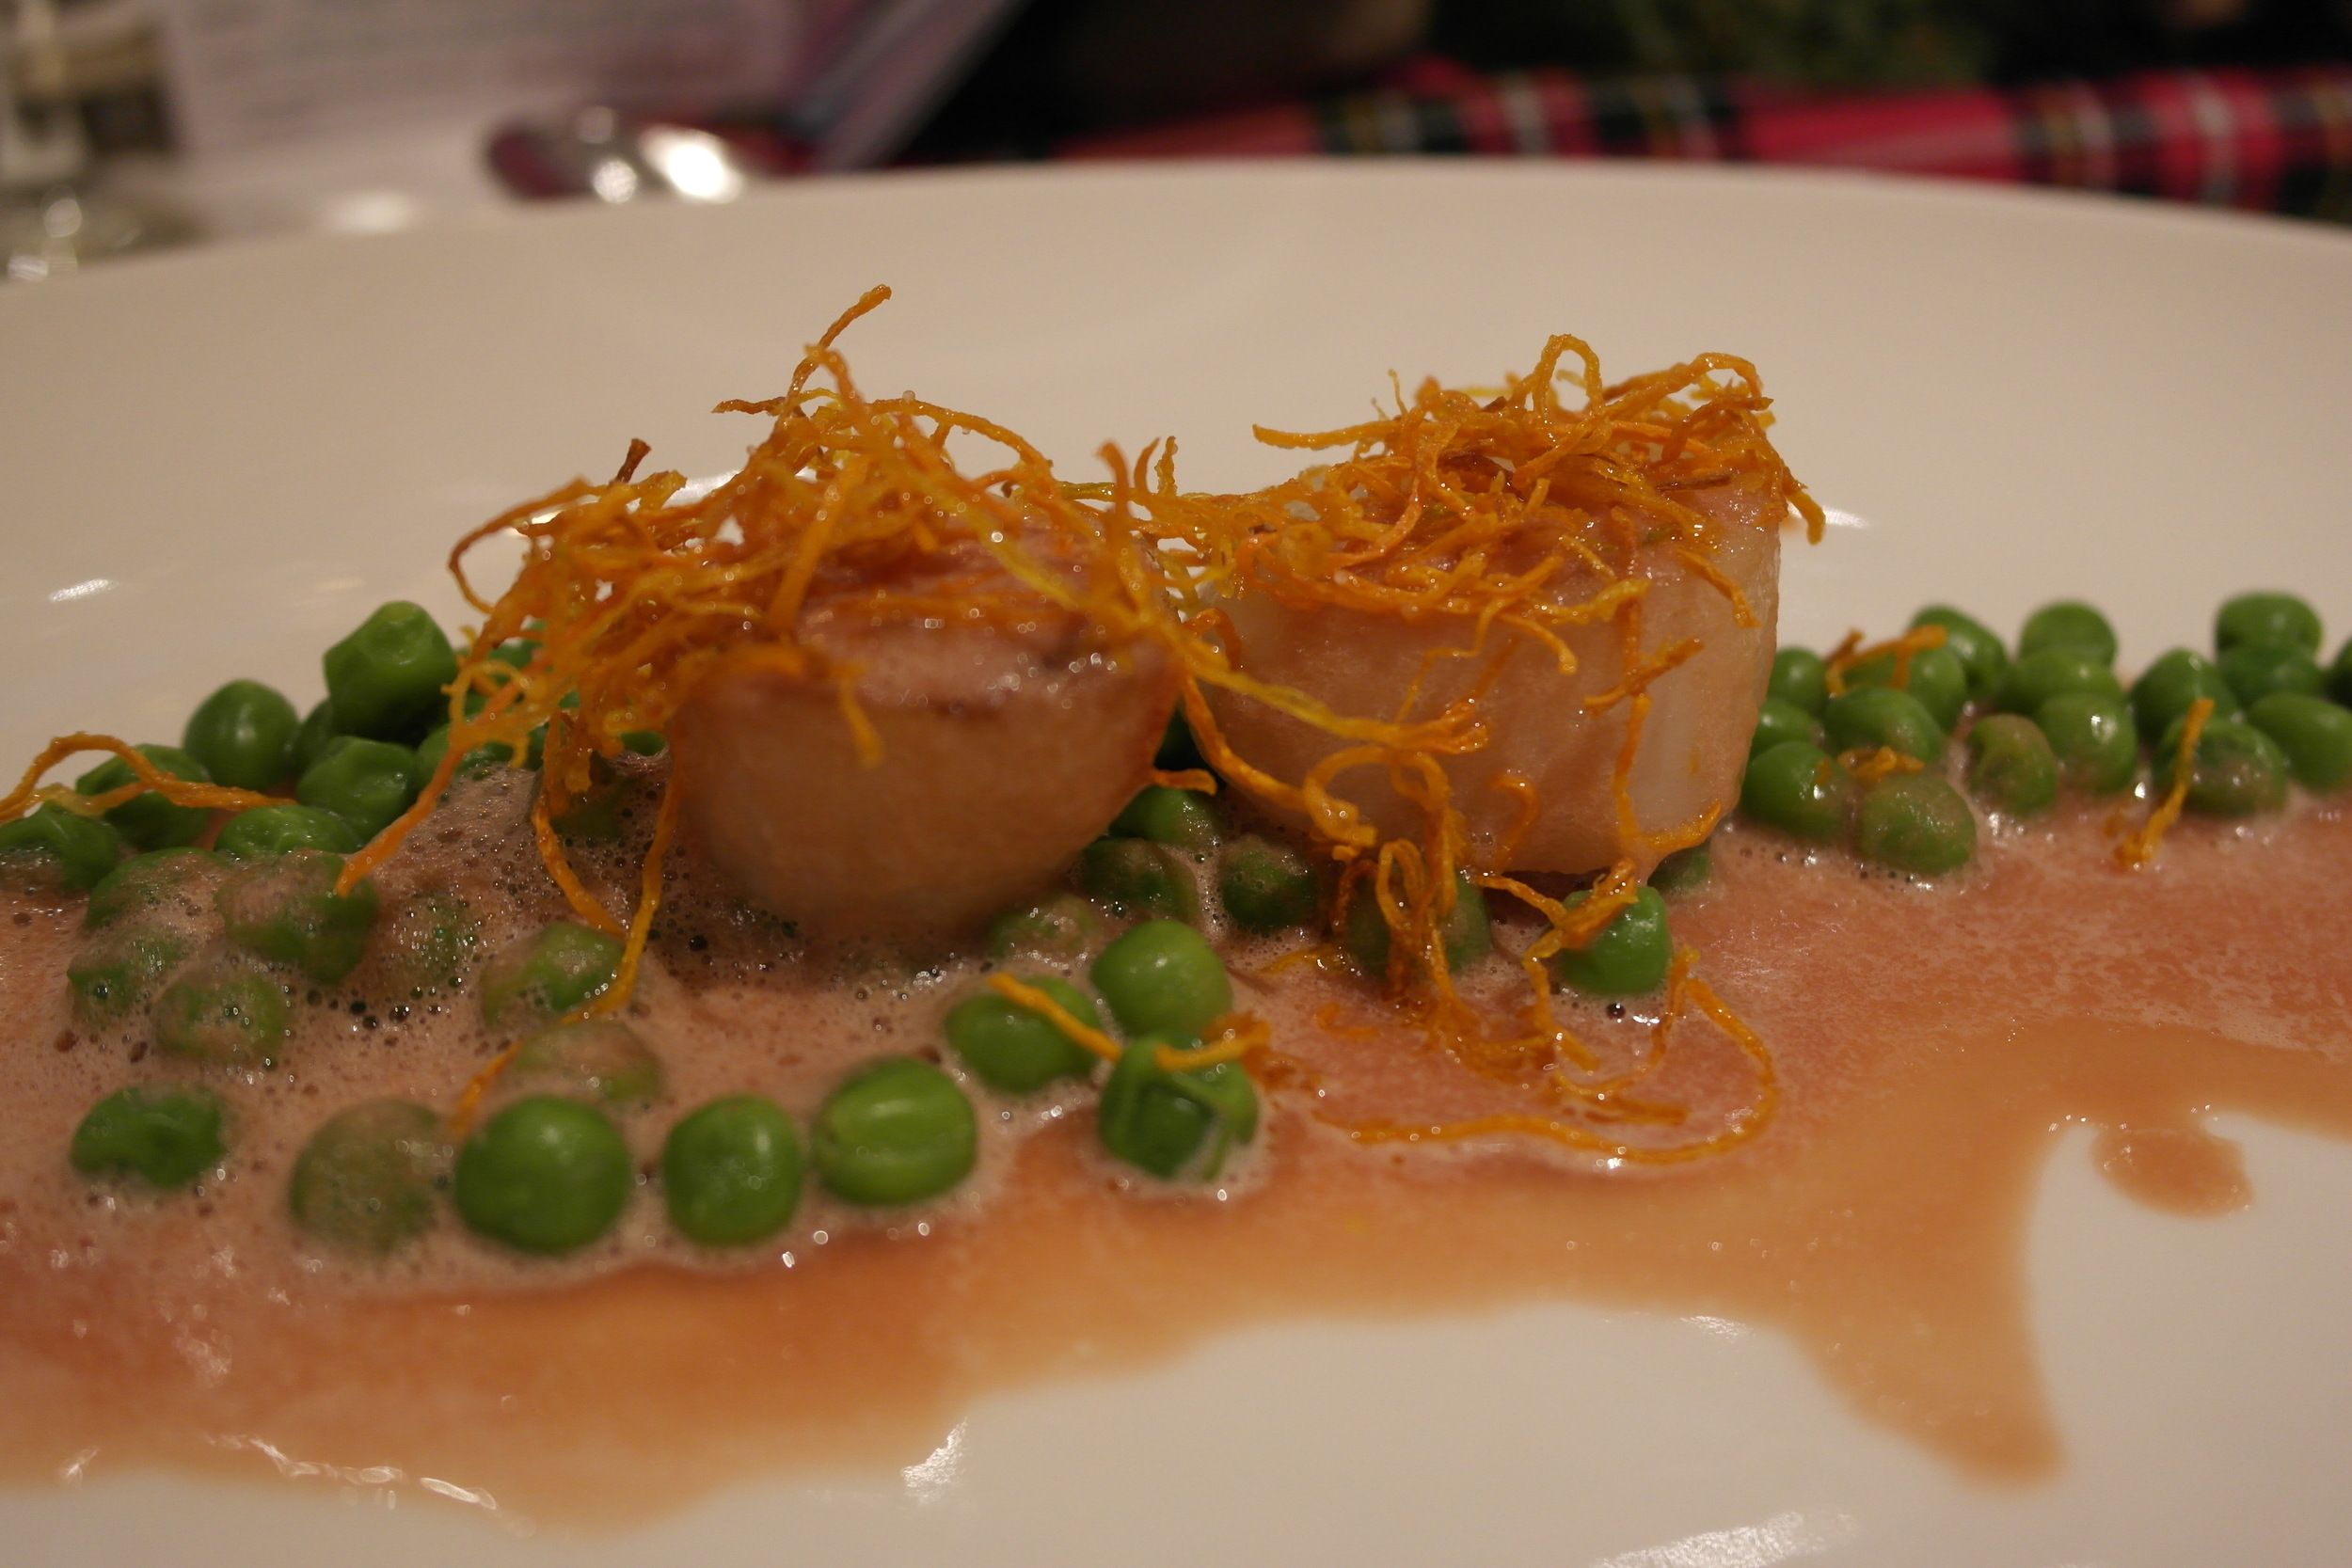 Duet of red beet and peas with scallops on carrot straw served with Single Malt WK 499 Old Pulteney